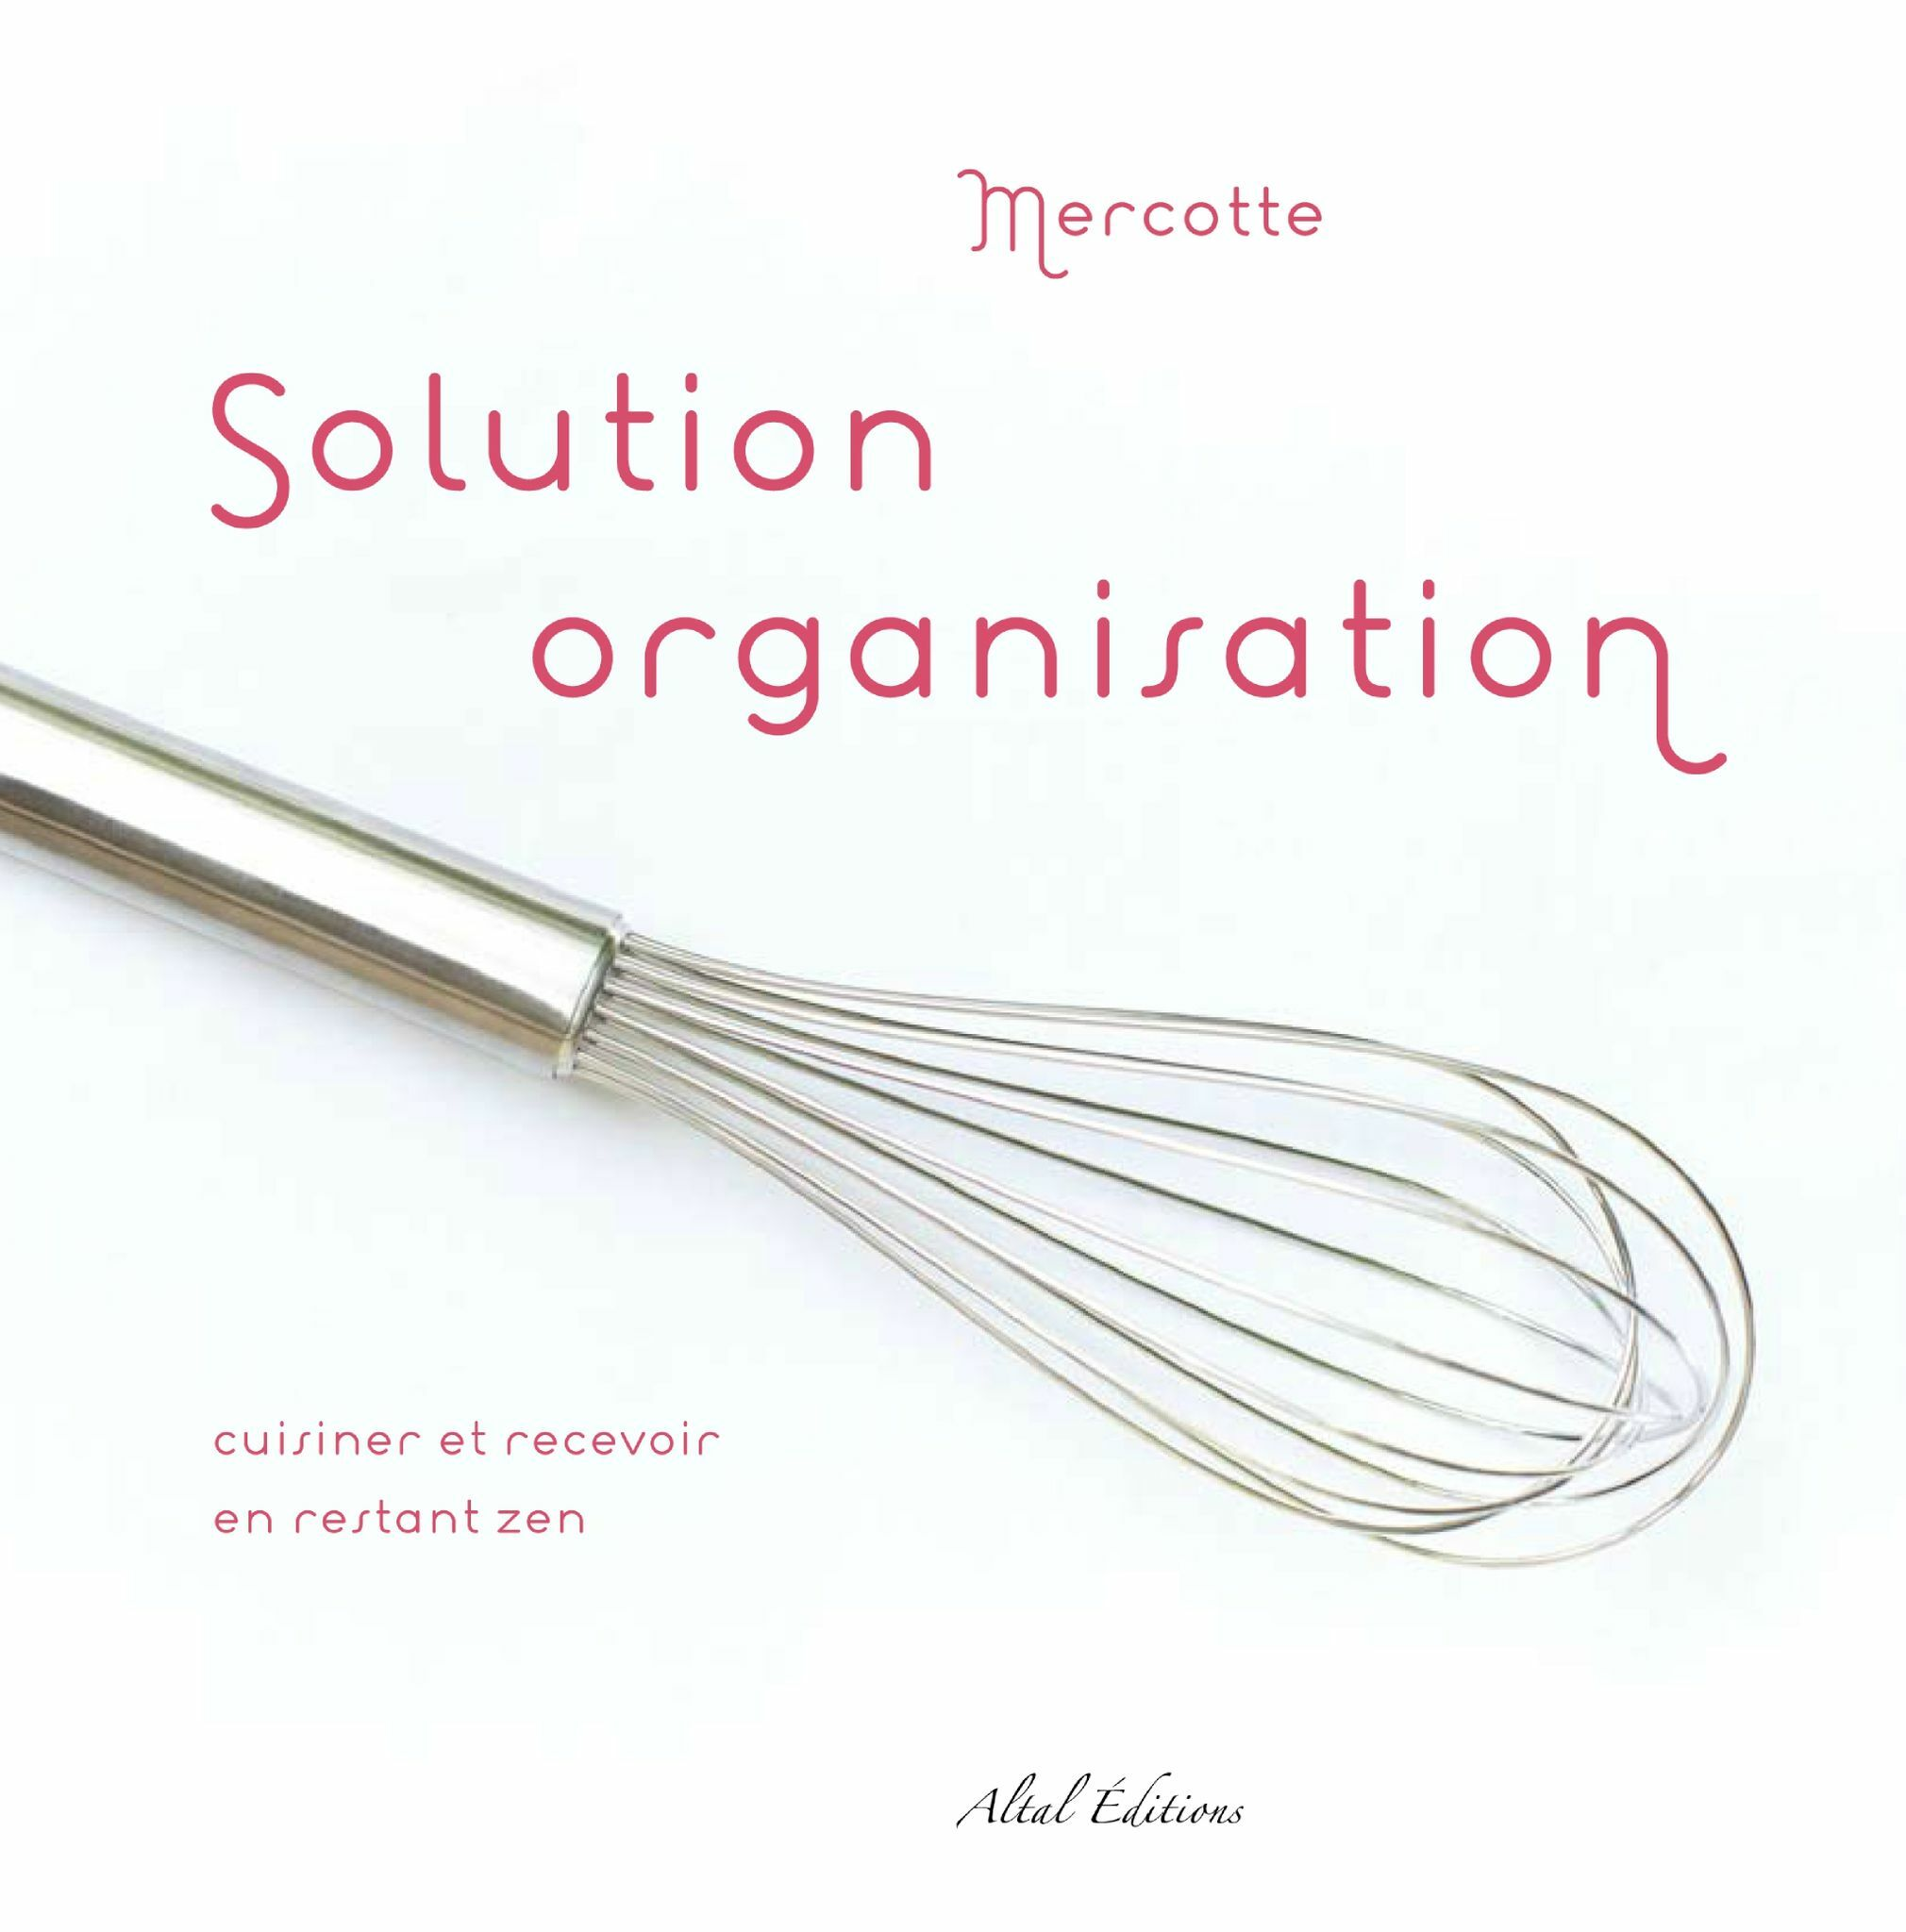 Mercotte - Solution organisation